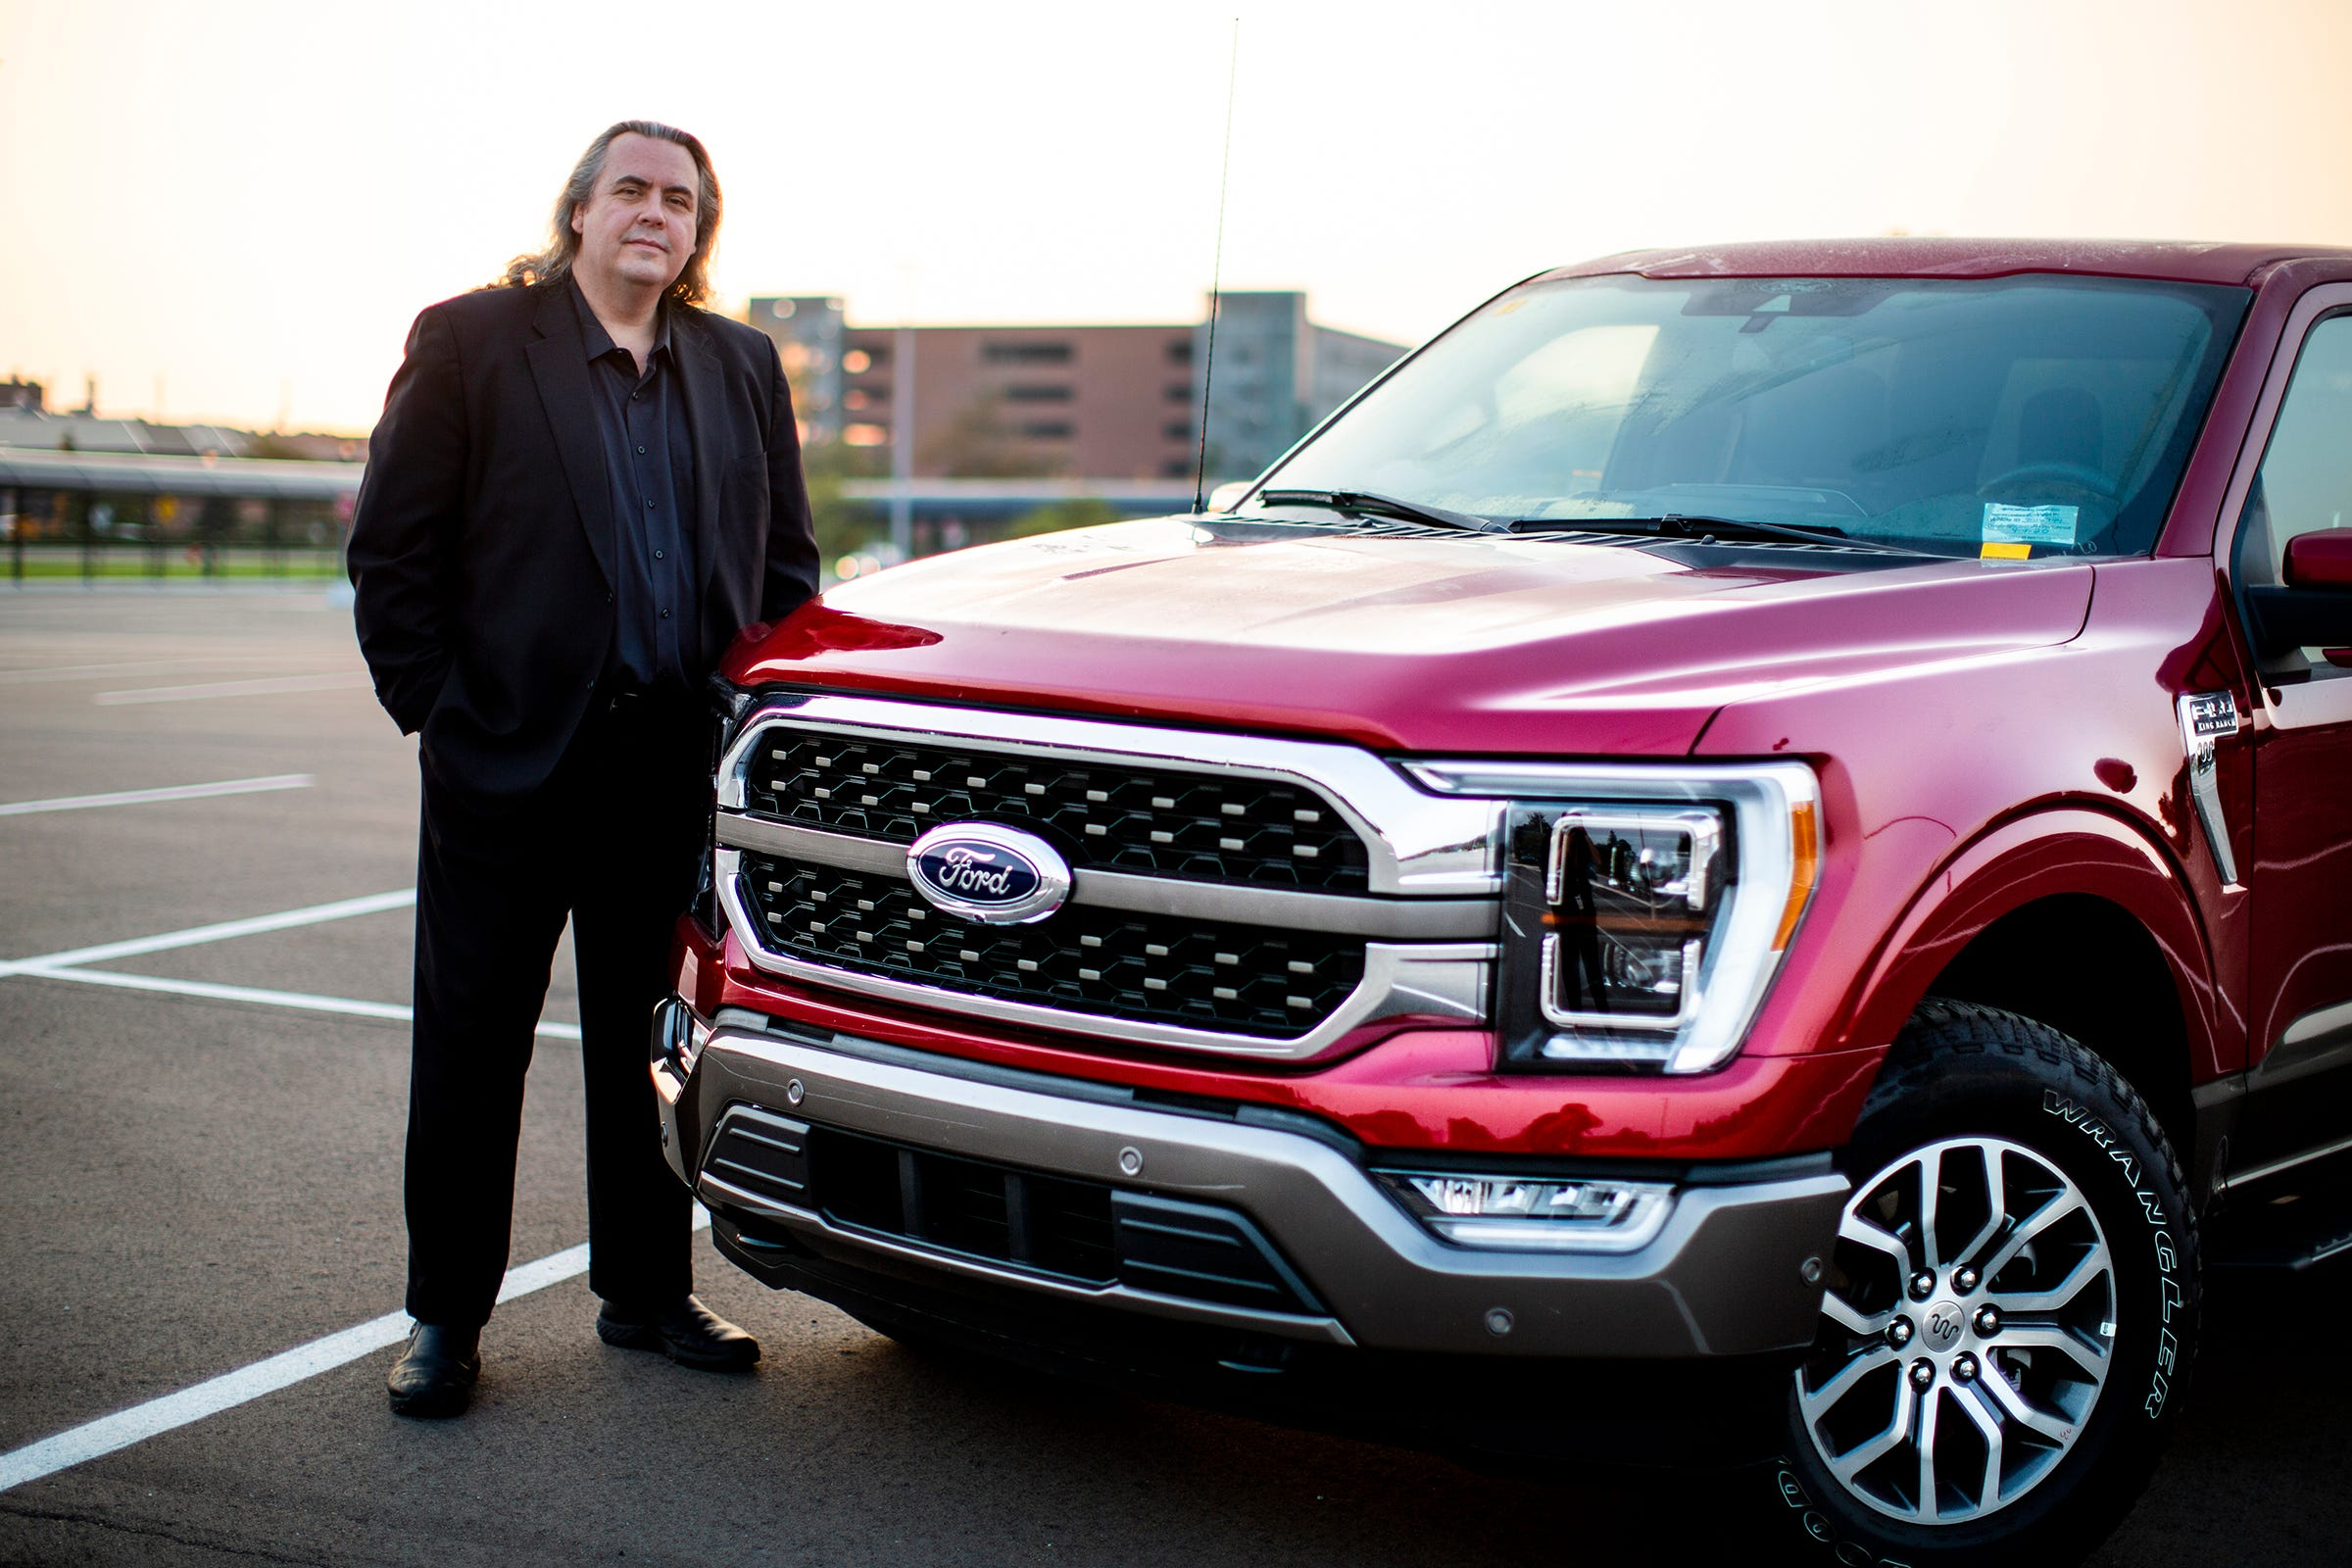 Designer s past in video games helps shape technology in new Ford F-150